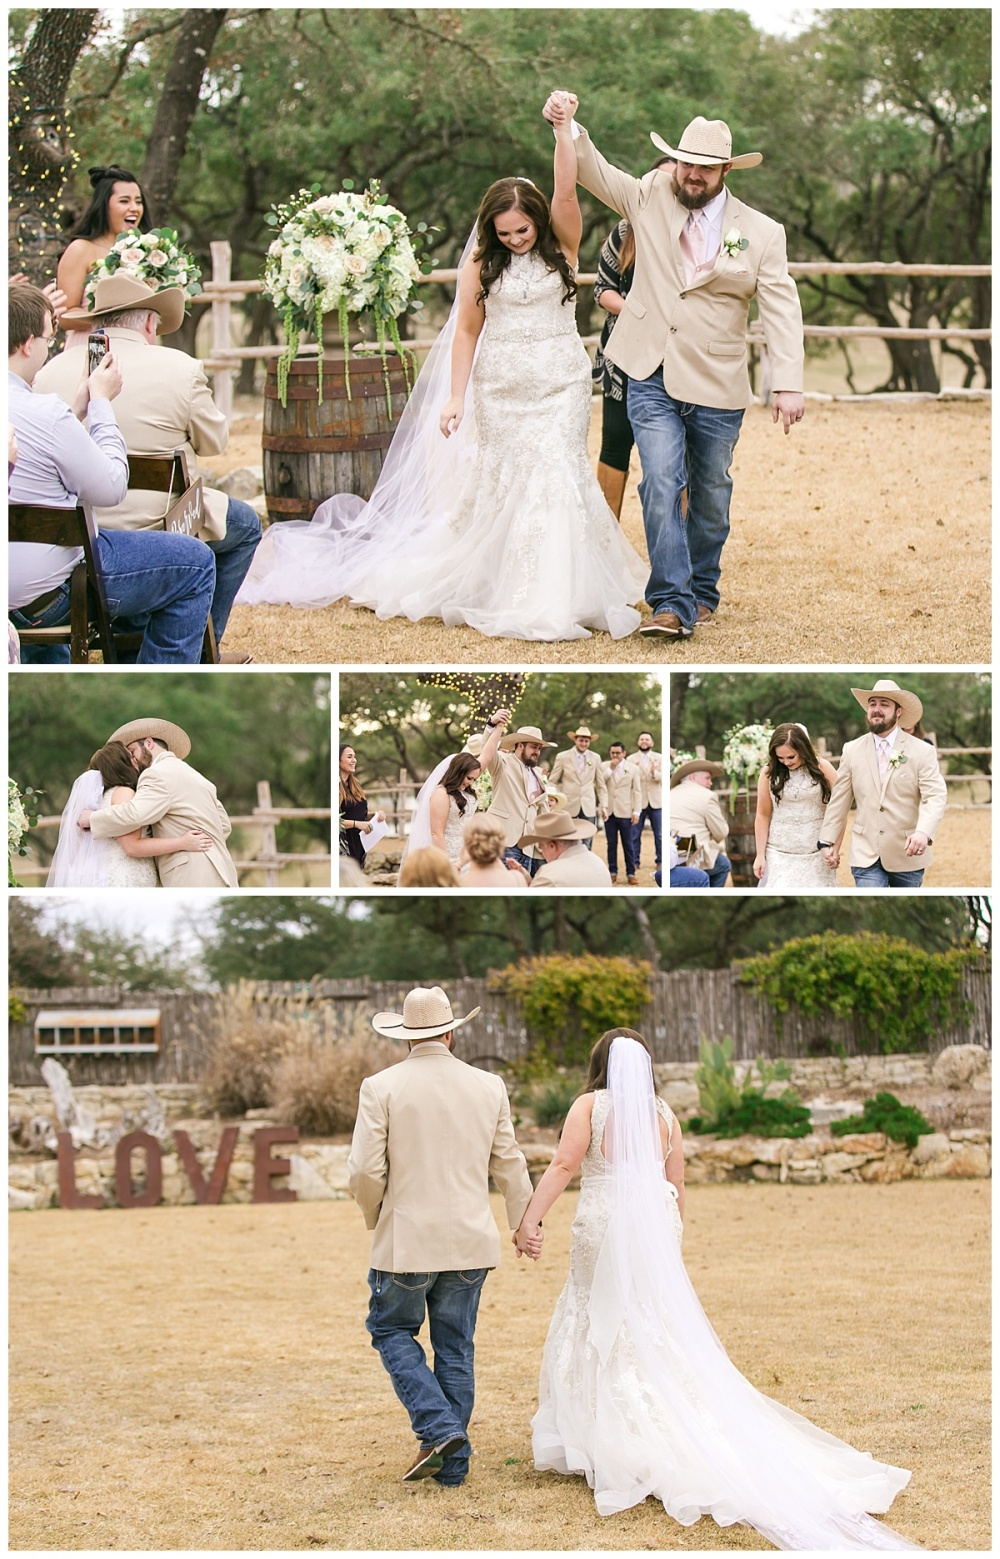 Carly-Barton-Photography-Branded-T-Ranch-Kendalia-Texas-Hill-Country-Wedding_0036.jpg